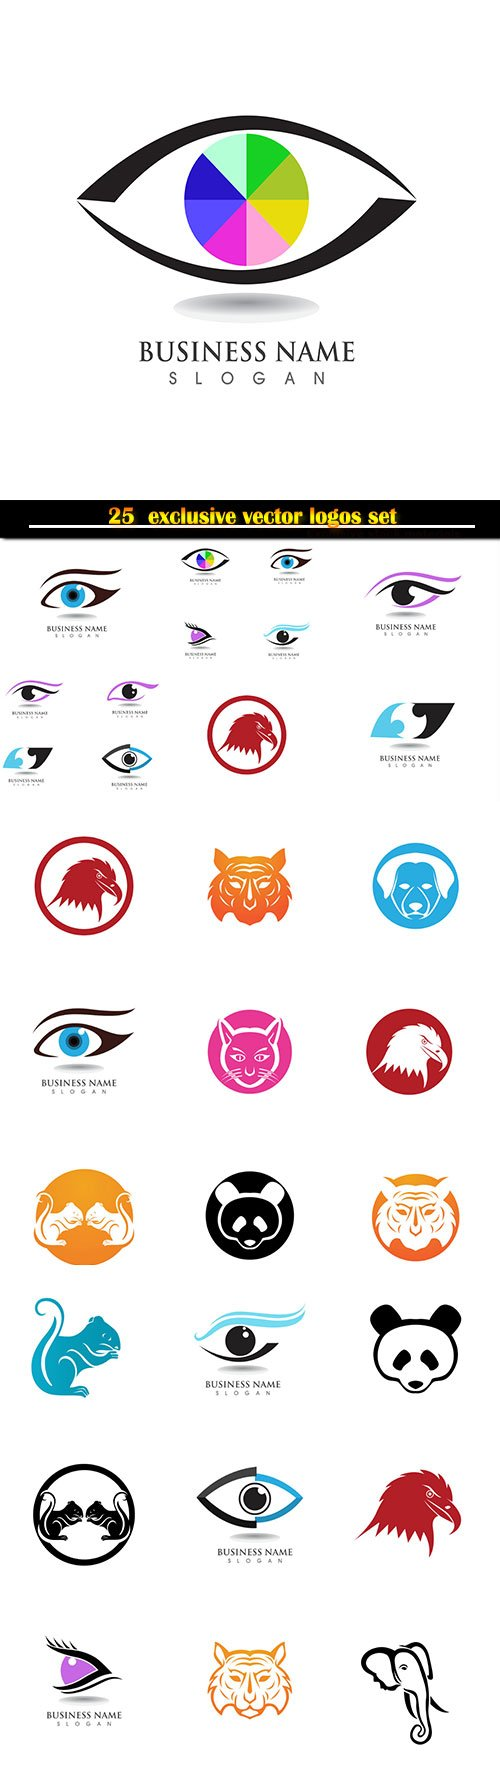 Logo business vector illustration template # 123